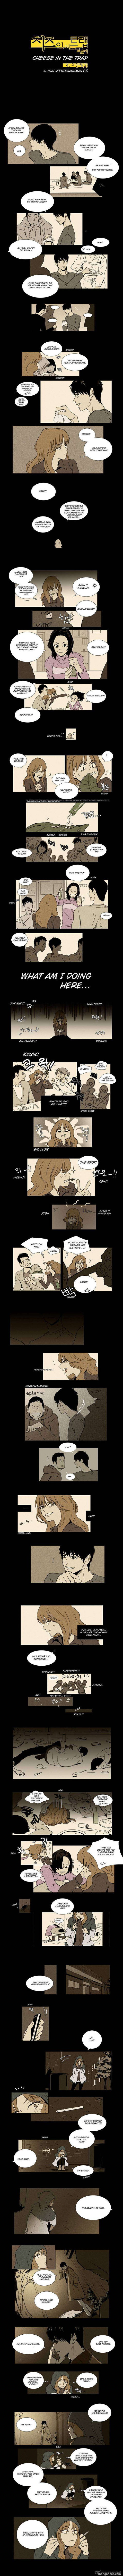 Cheese In The Trap 4 Page 1